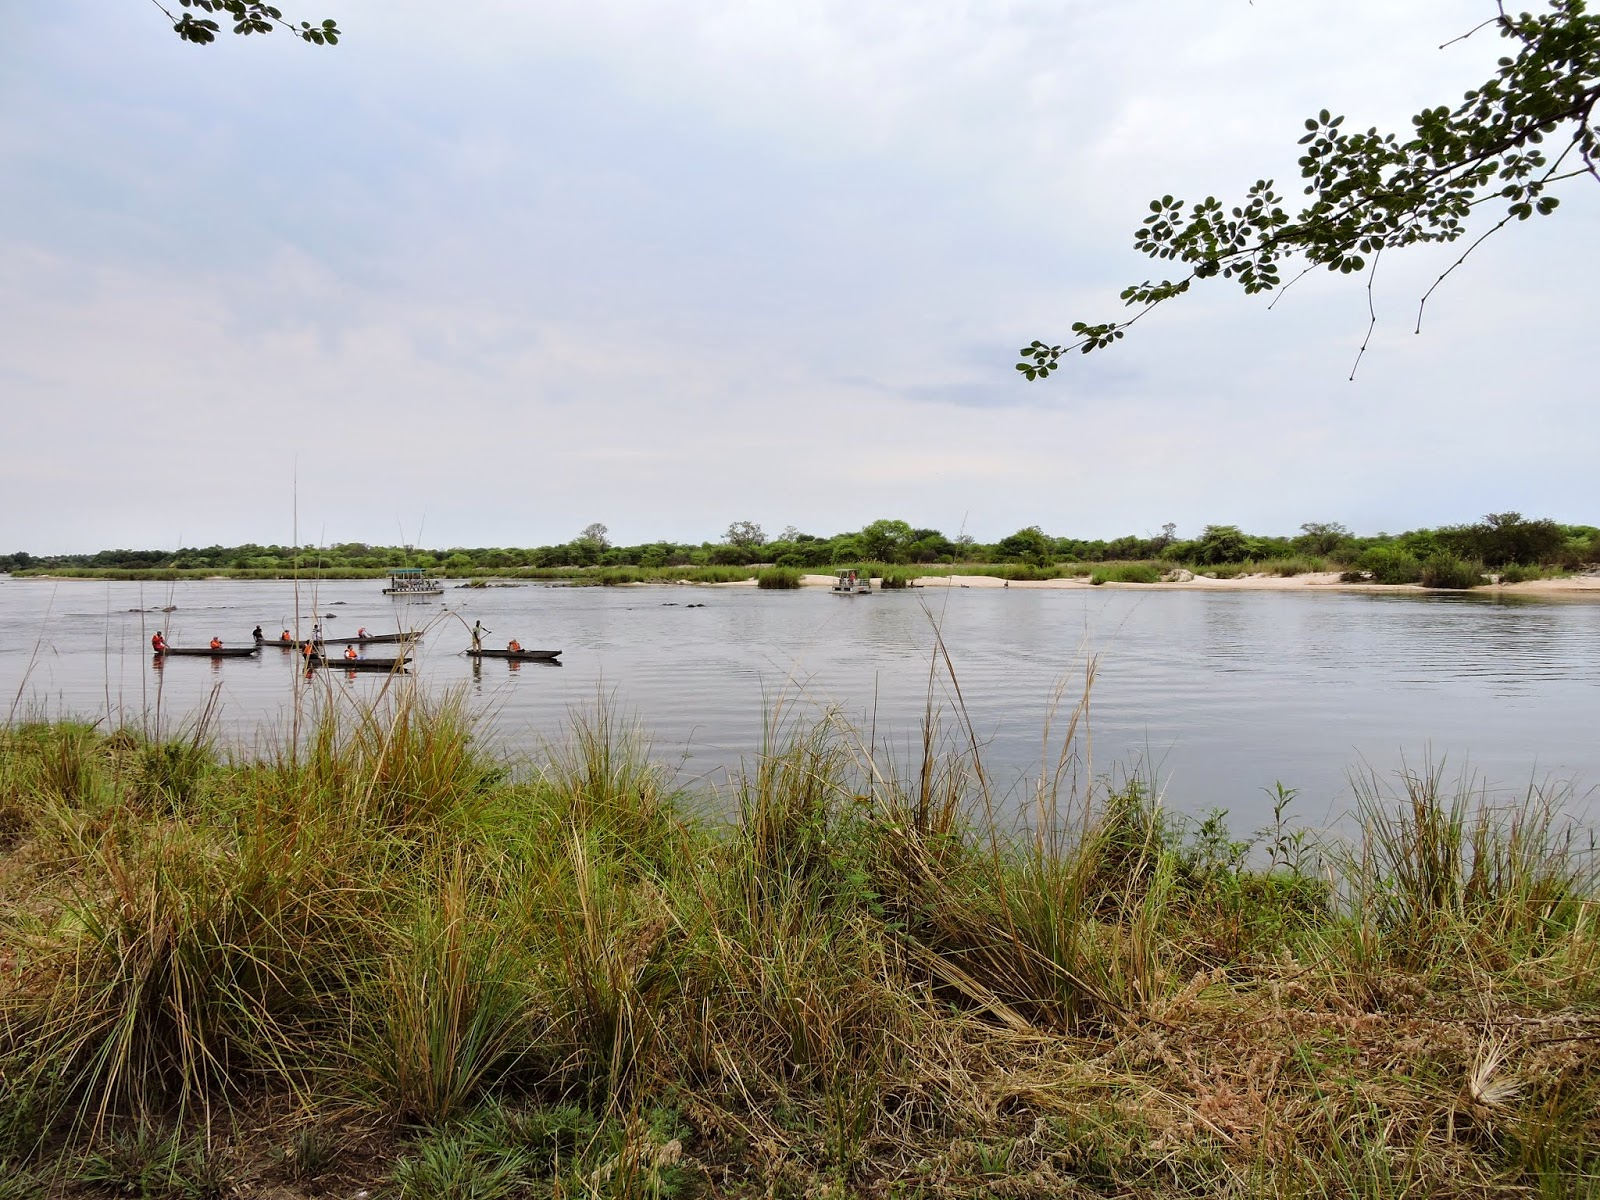 Tourist in their hollowed-out tree trunks boats on the Okavango River